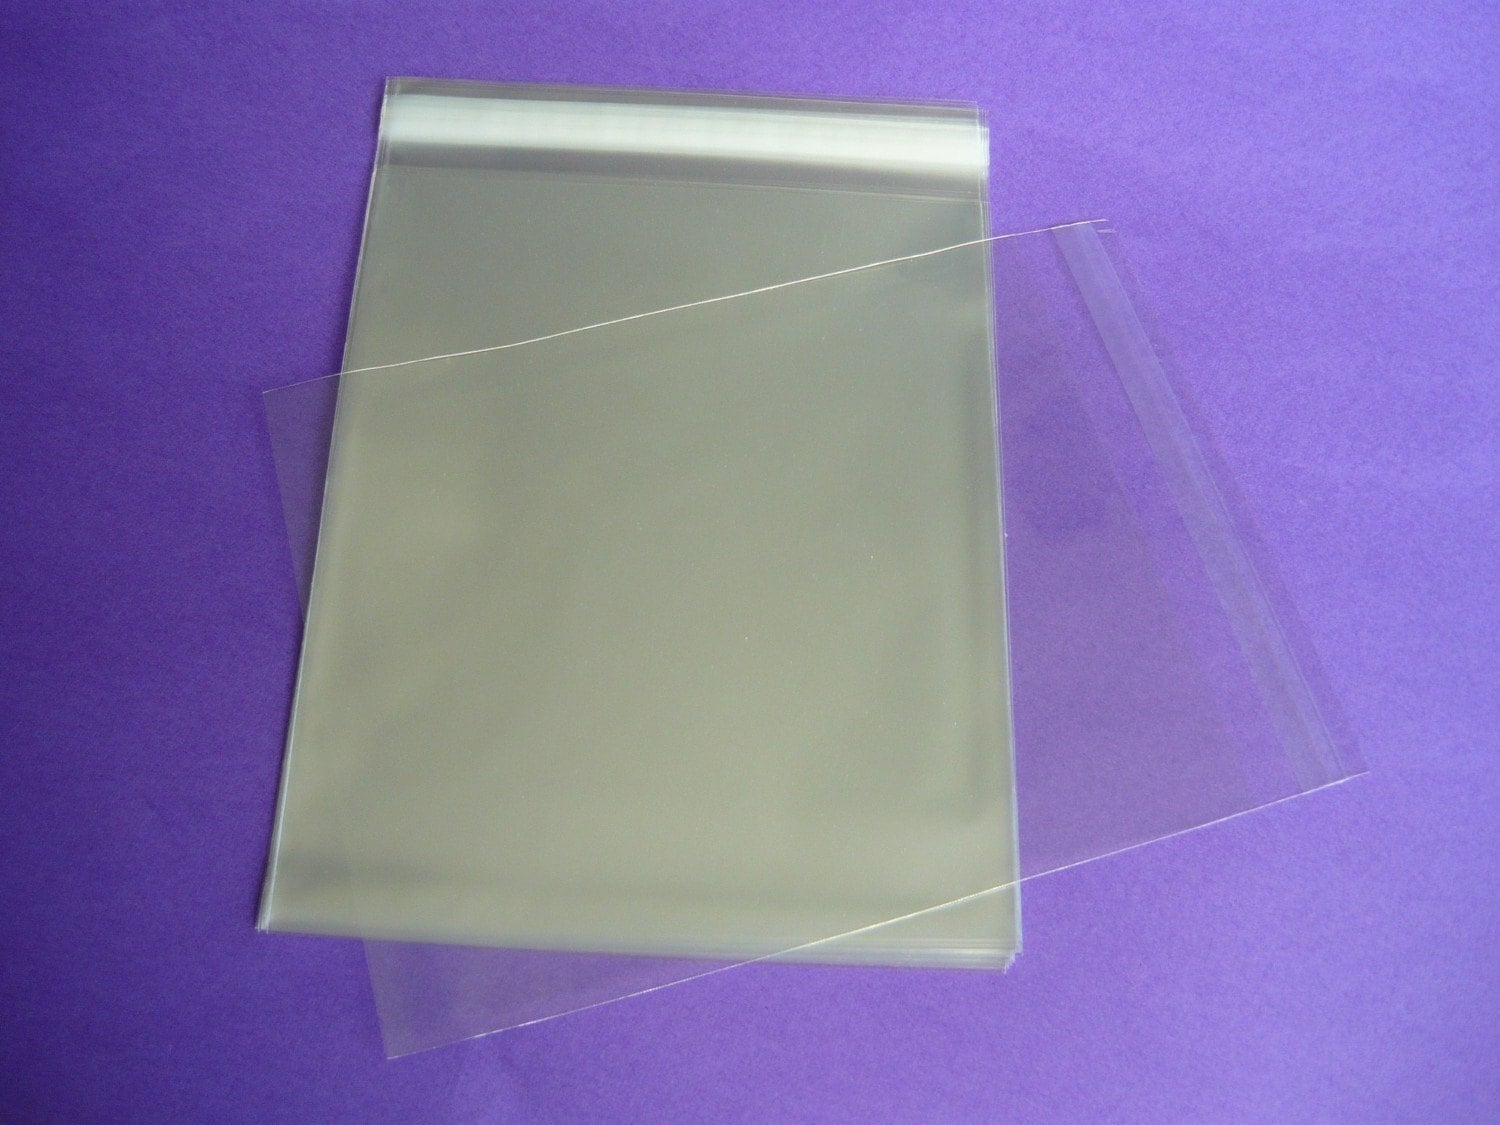 25 124 X 182 12x18 Clear Resealable Cello Bag Plastic Etsy